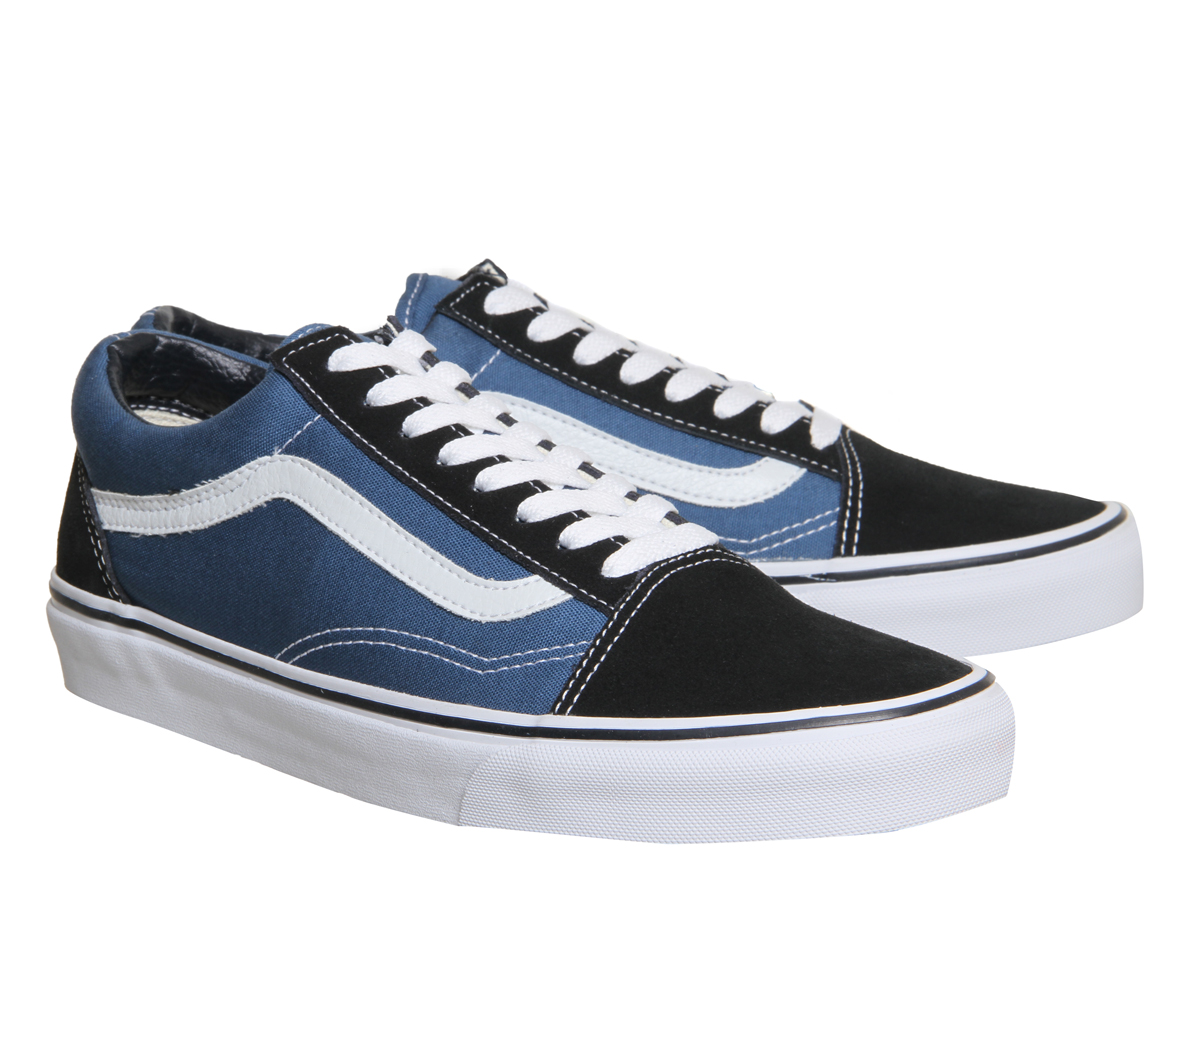 327e95c2d6ed Sentinel Mens Vans Old Skool Navy Trainers Shoes